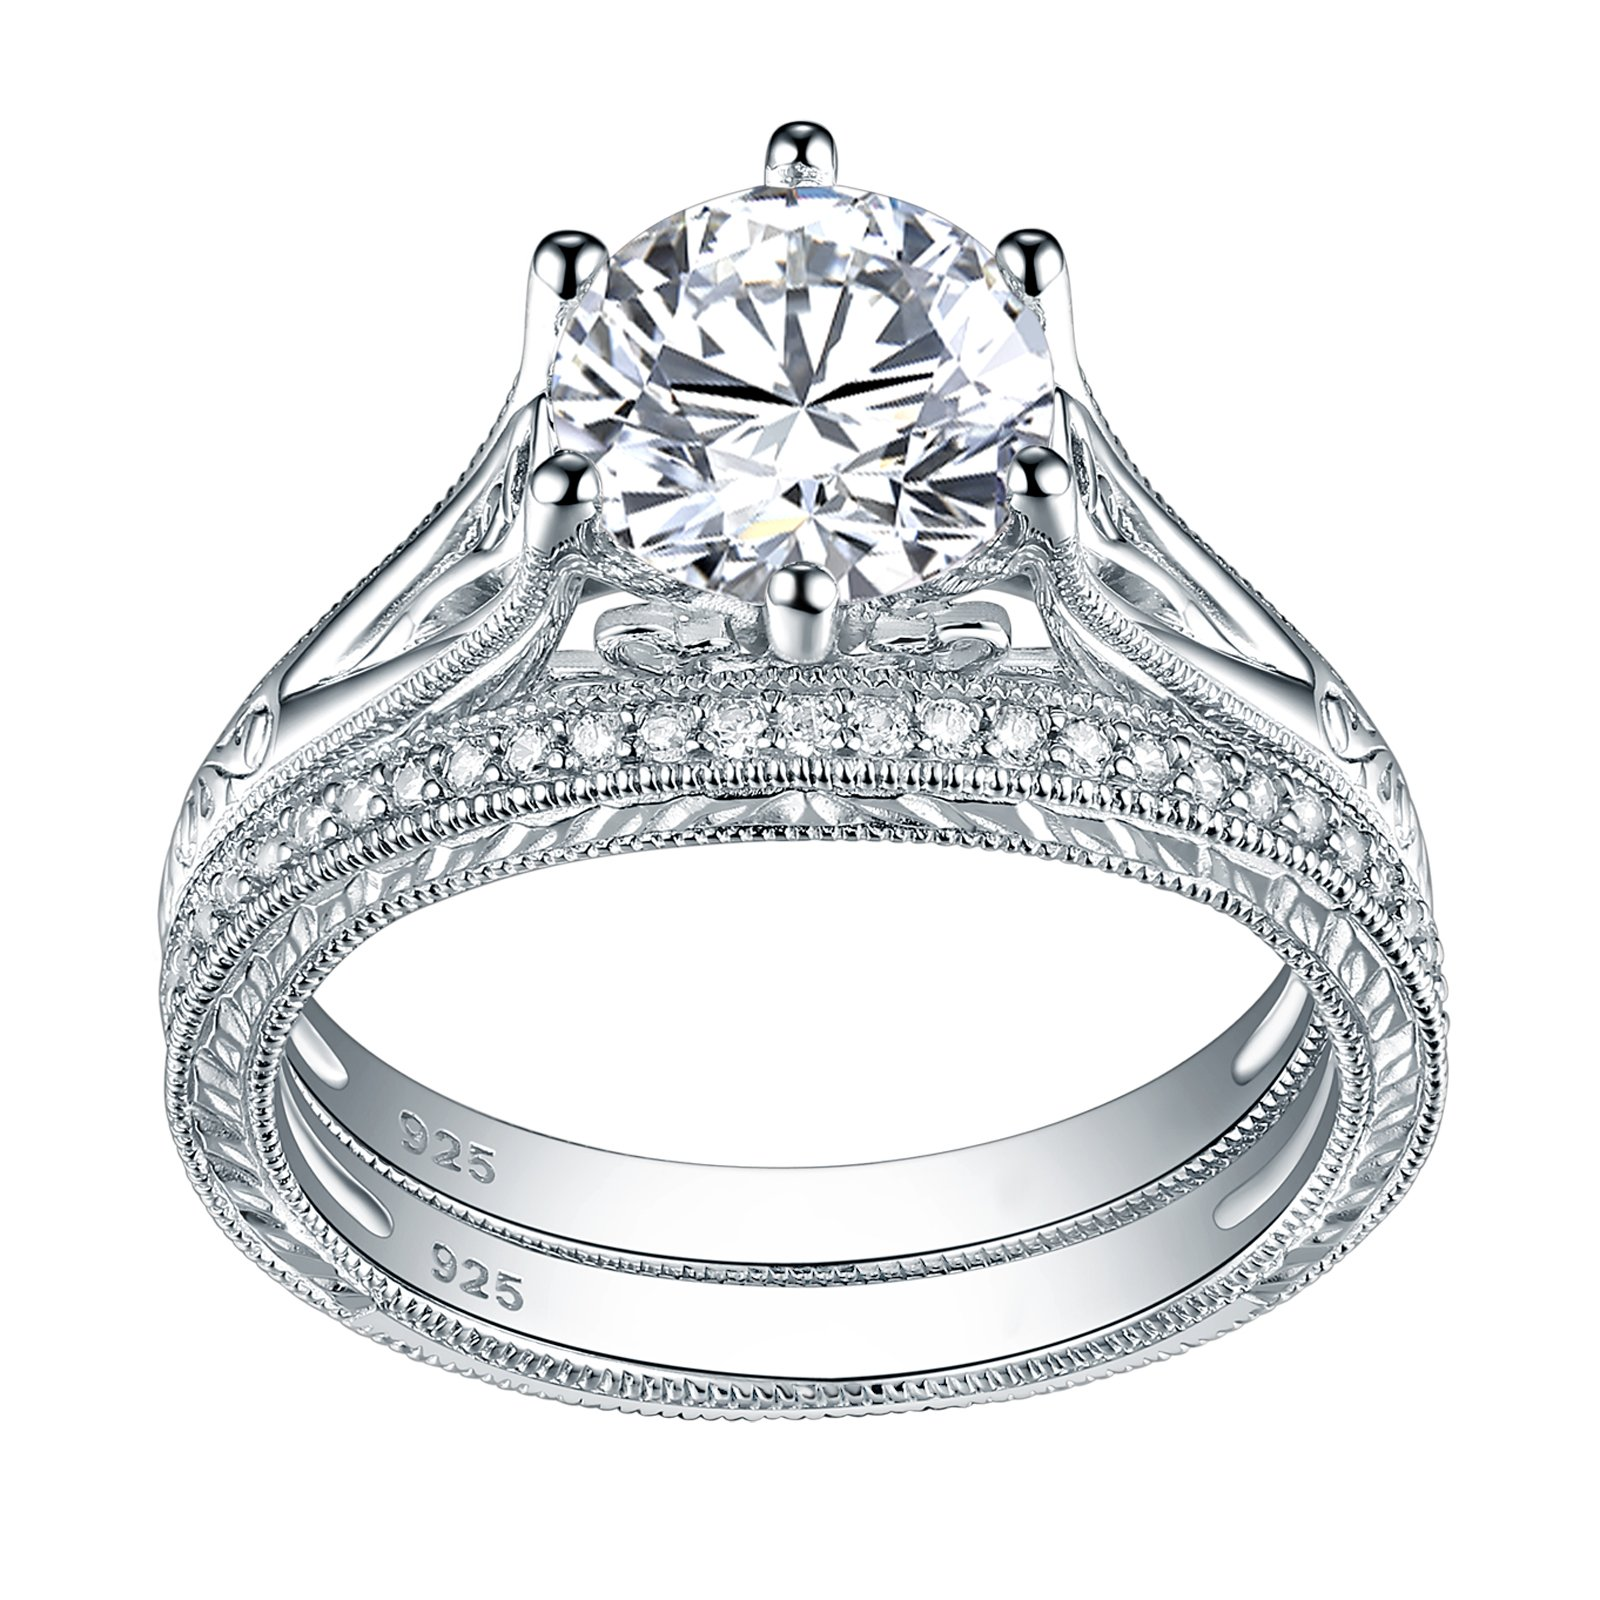 Newshe Jewellery Sterling Silver Cz Wedding Ring Sets Vintage Engagement Rings for Women 2.2ct Round Size 9